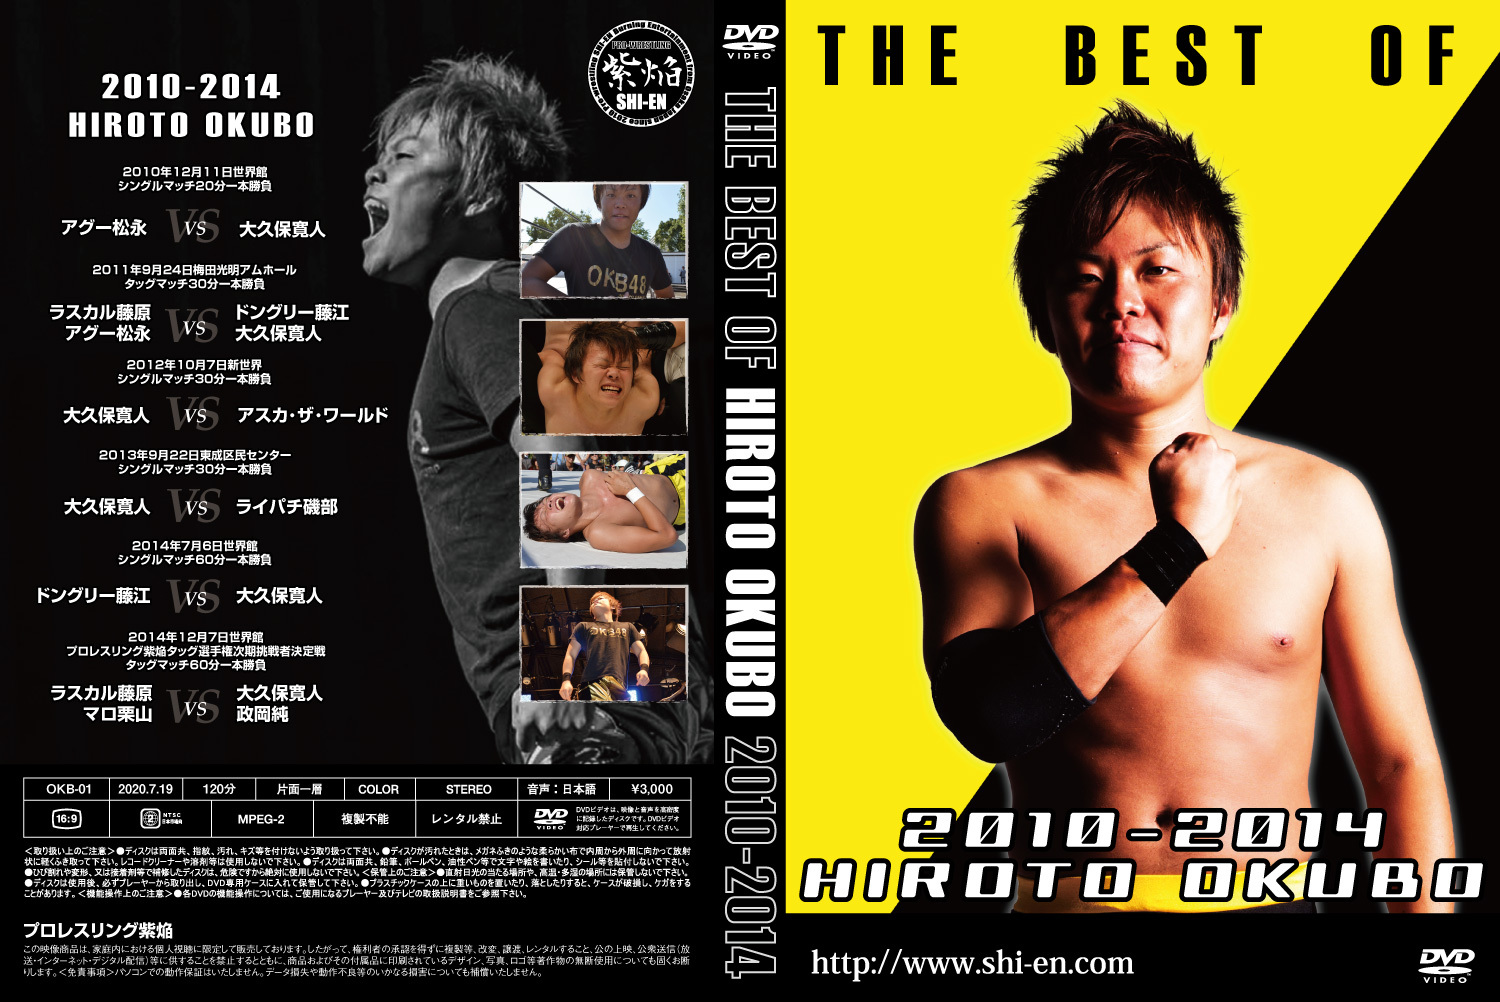 BEST OF THE 大久保寛人 2010-2014